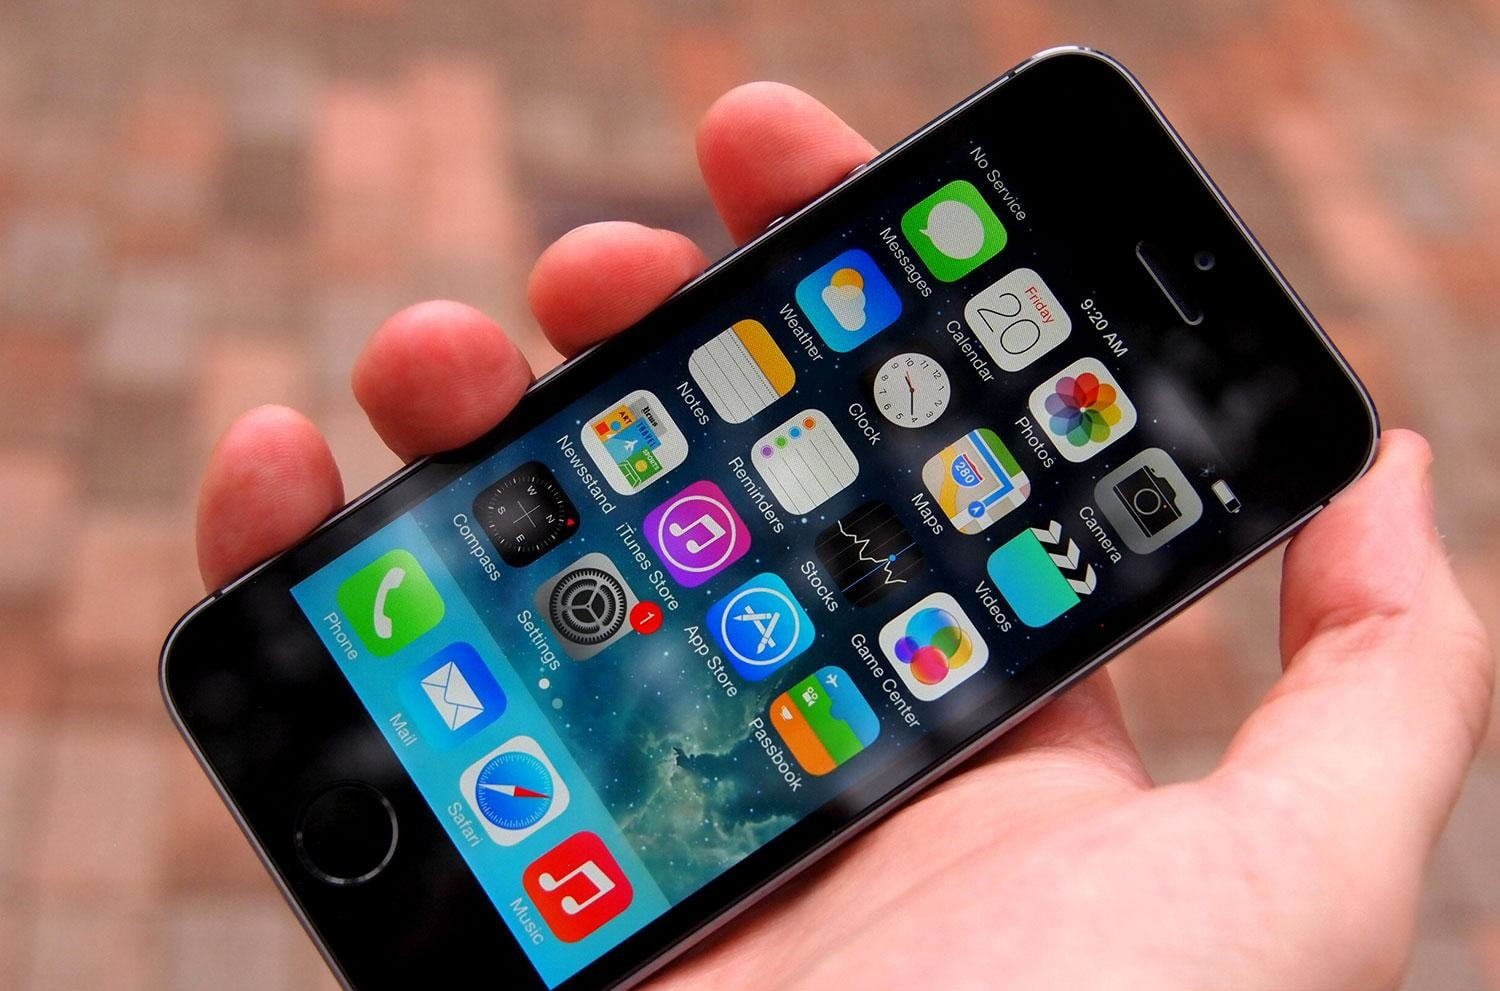 Apple tells iPhone 5 owners to update software or face the consequences